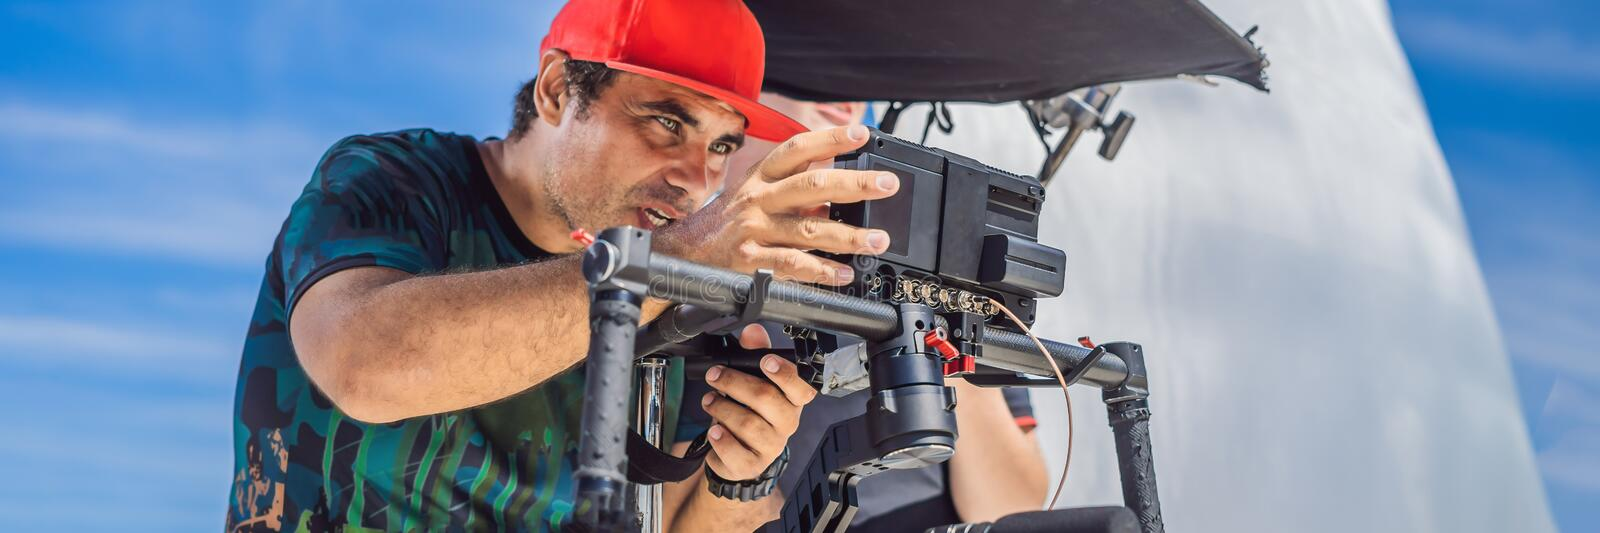 The production team on a commercial video shoot. Steadicam operator uses the 3-axis camera stabilizer and cinema-grade. Camera. BANNER, LONG FORMAT royalty free stock photo